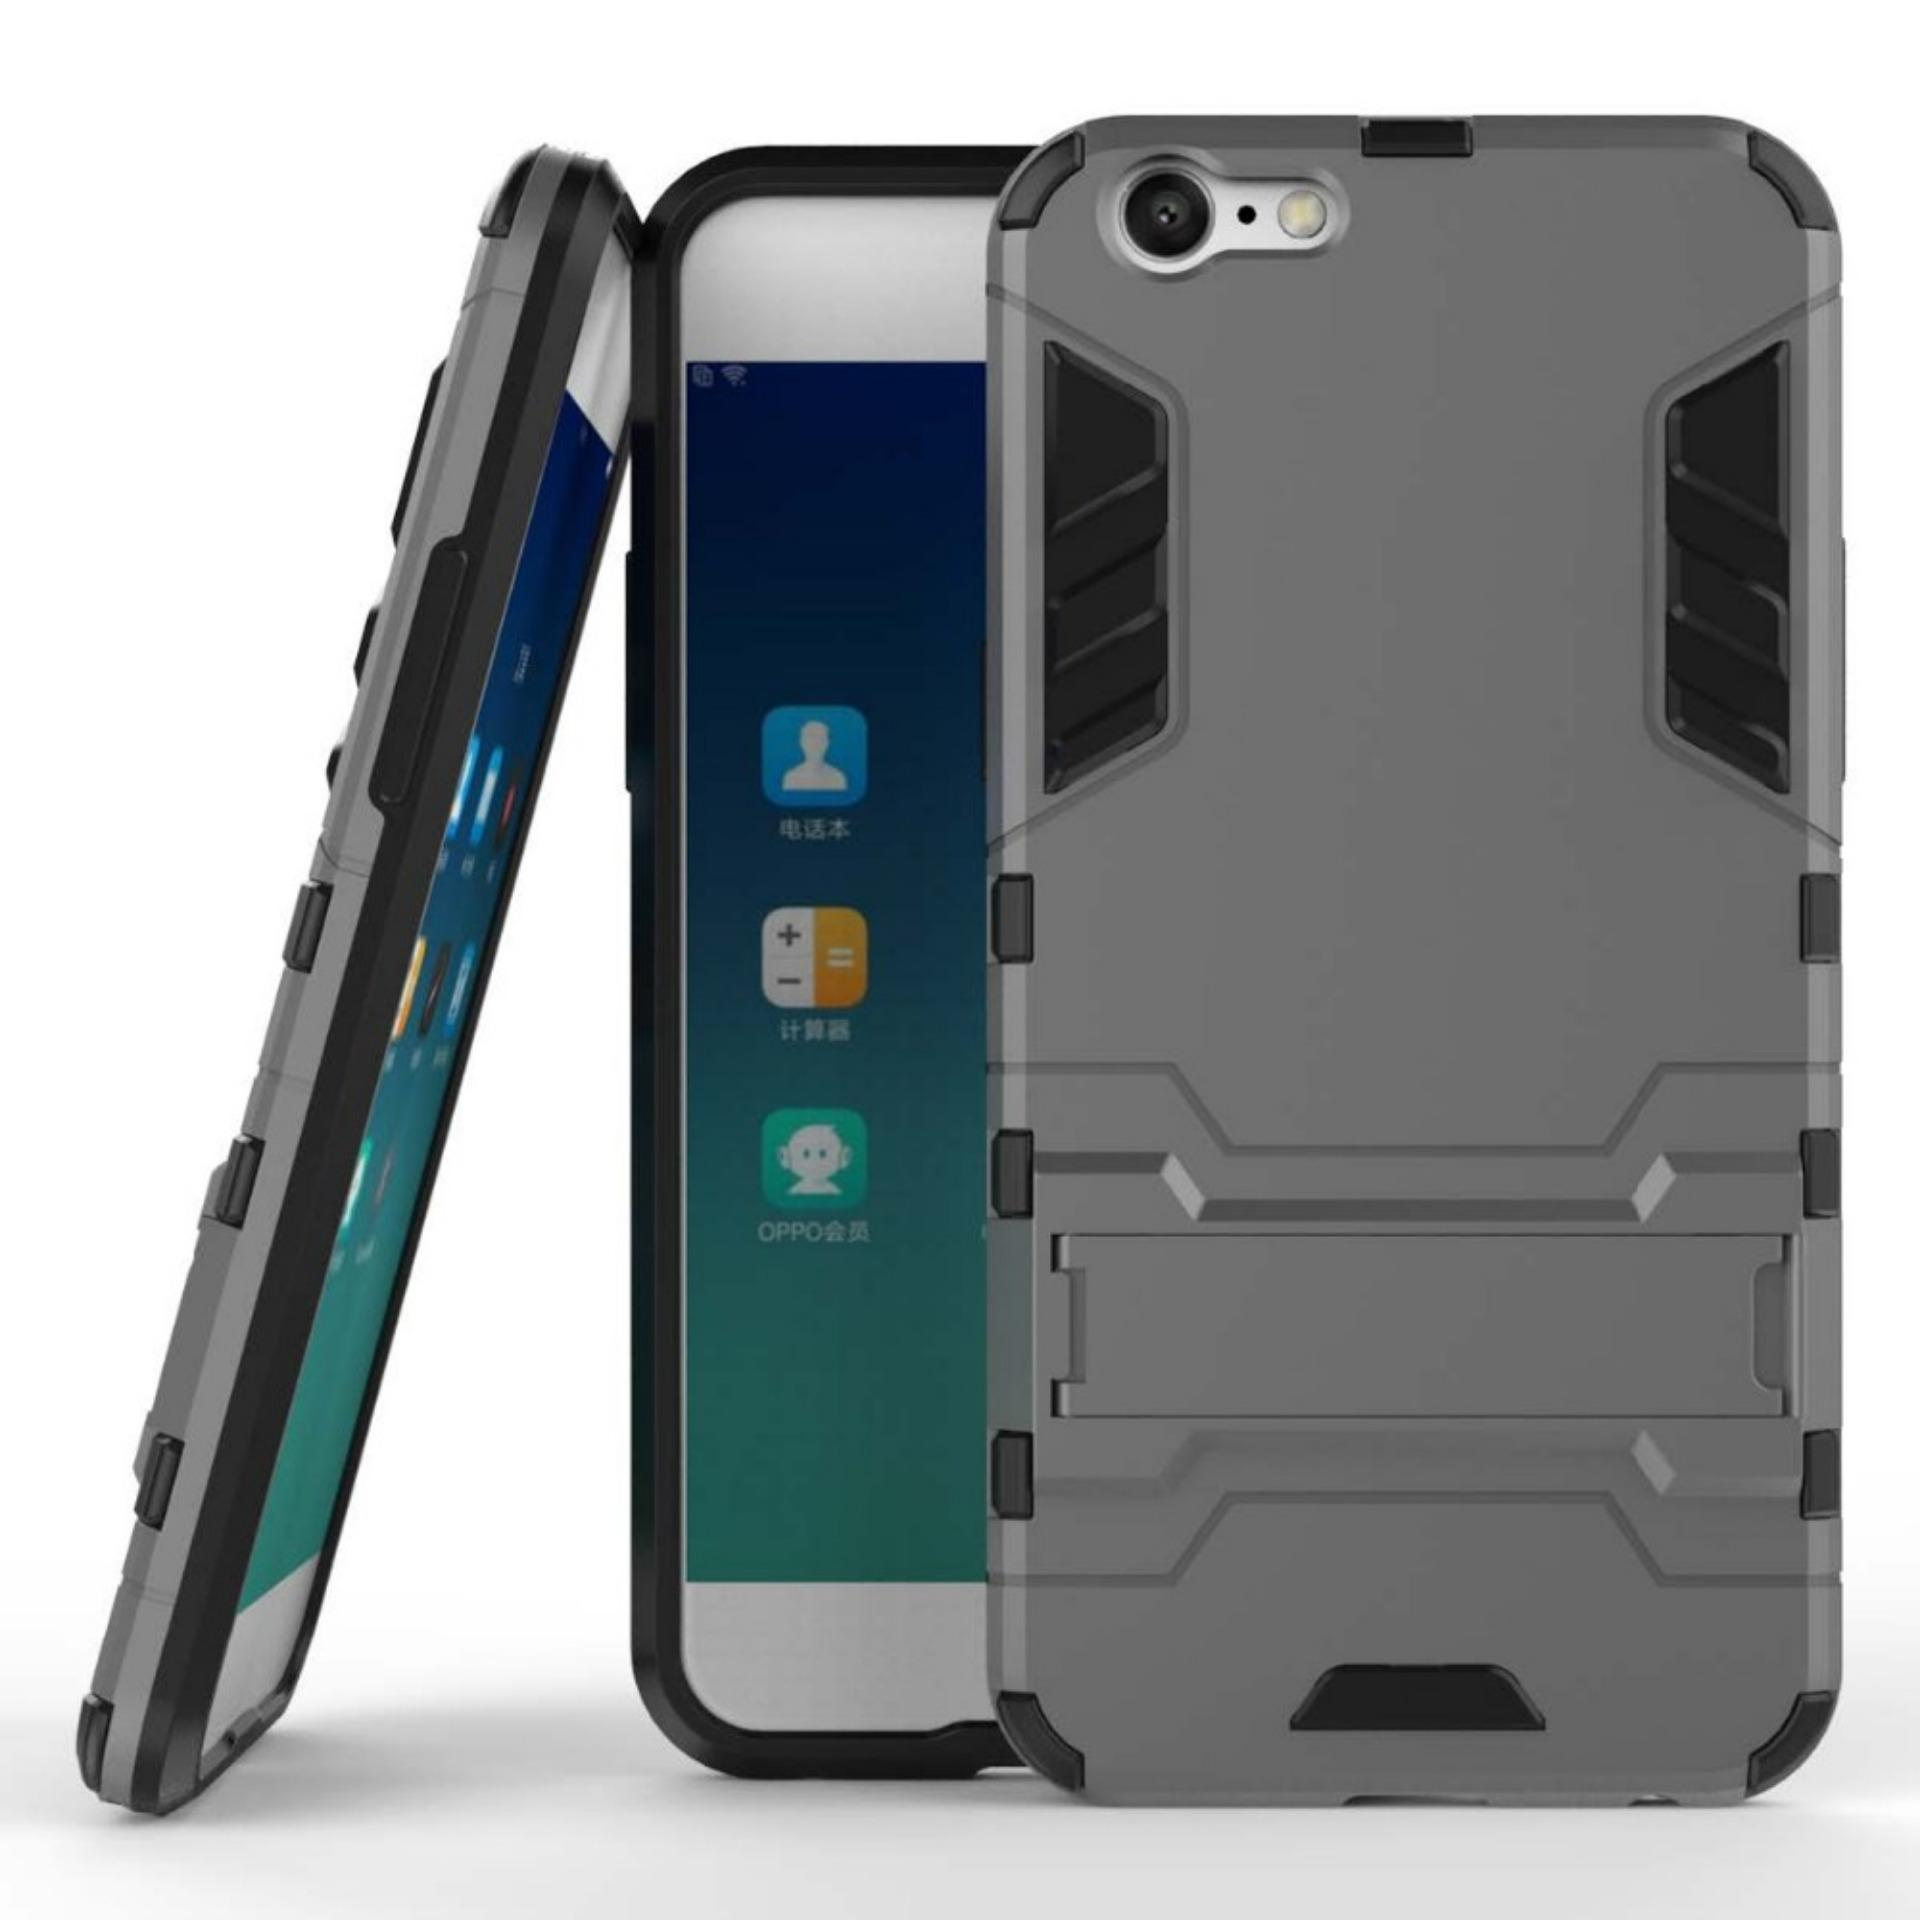 ProCase Kickstand Hybrid Armor Iron Man PC+TPU Back Cover Case for .